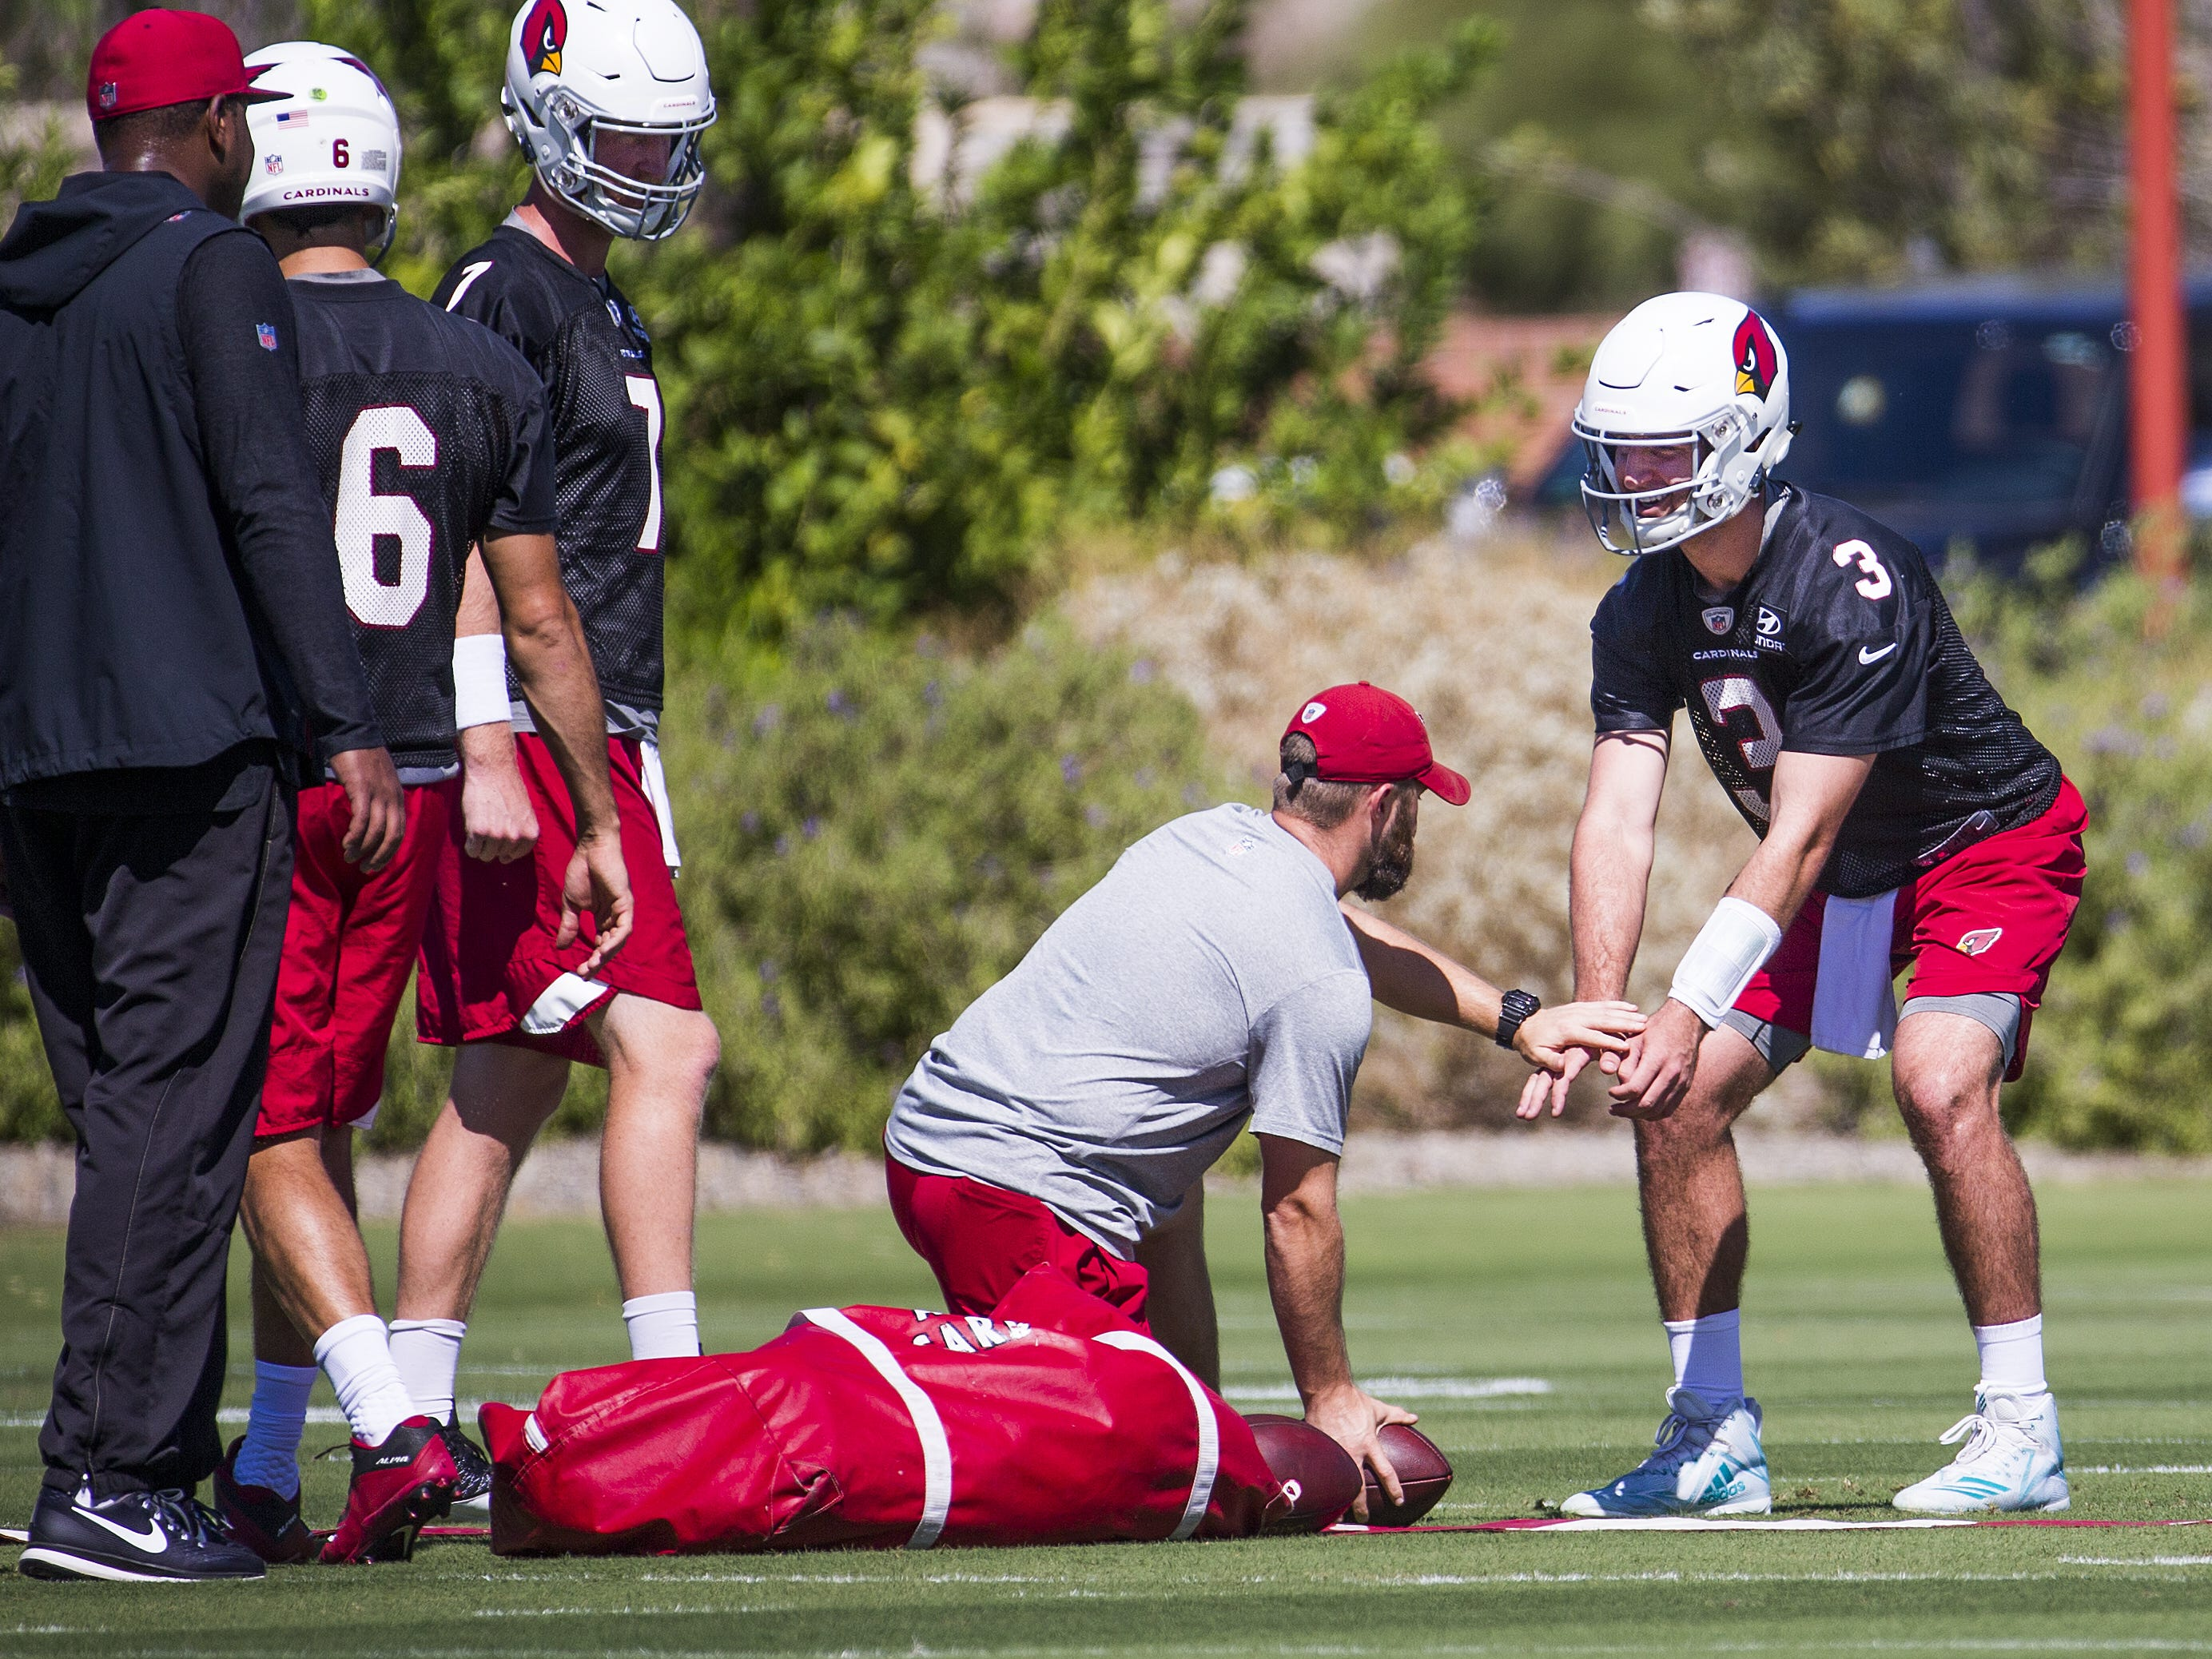 Arizona Cardinals quarterback Josh Rosen prepares to take a snap during practice at the Tempe training facility, Wednesday, September 26, 2018.